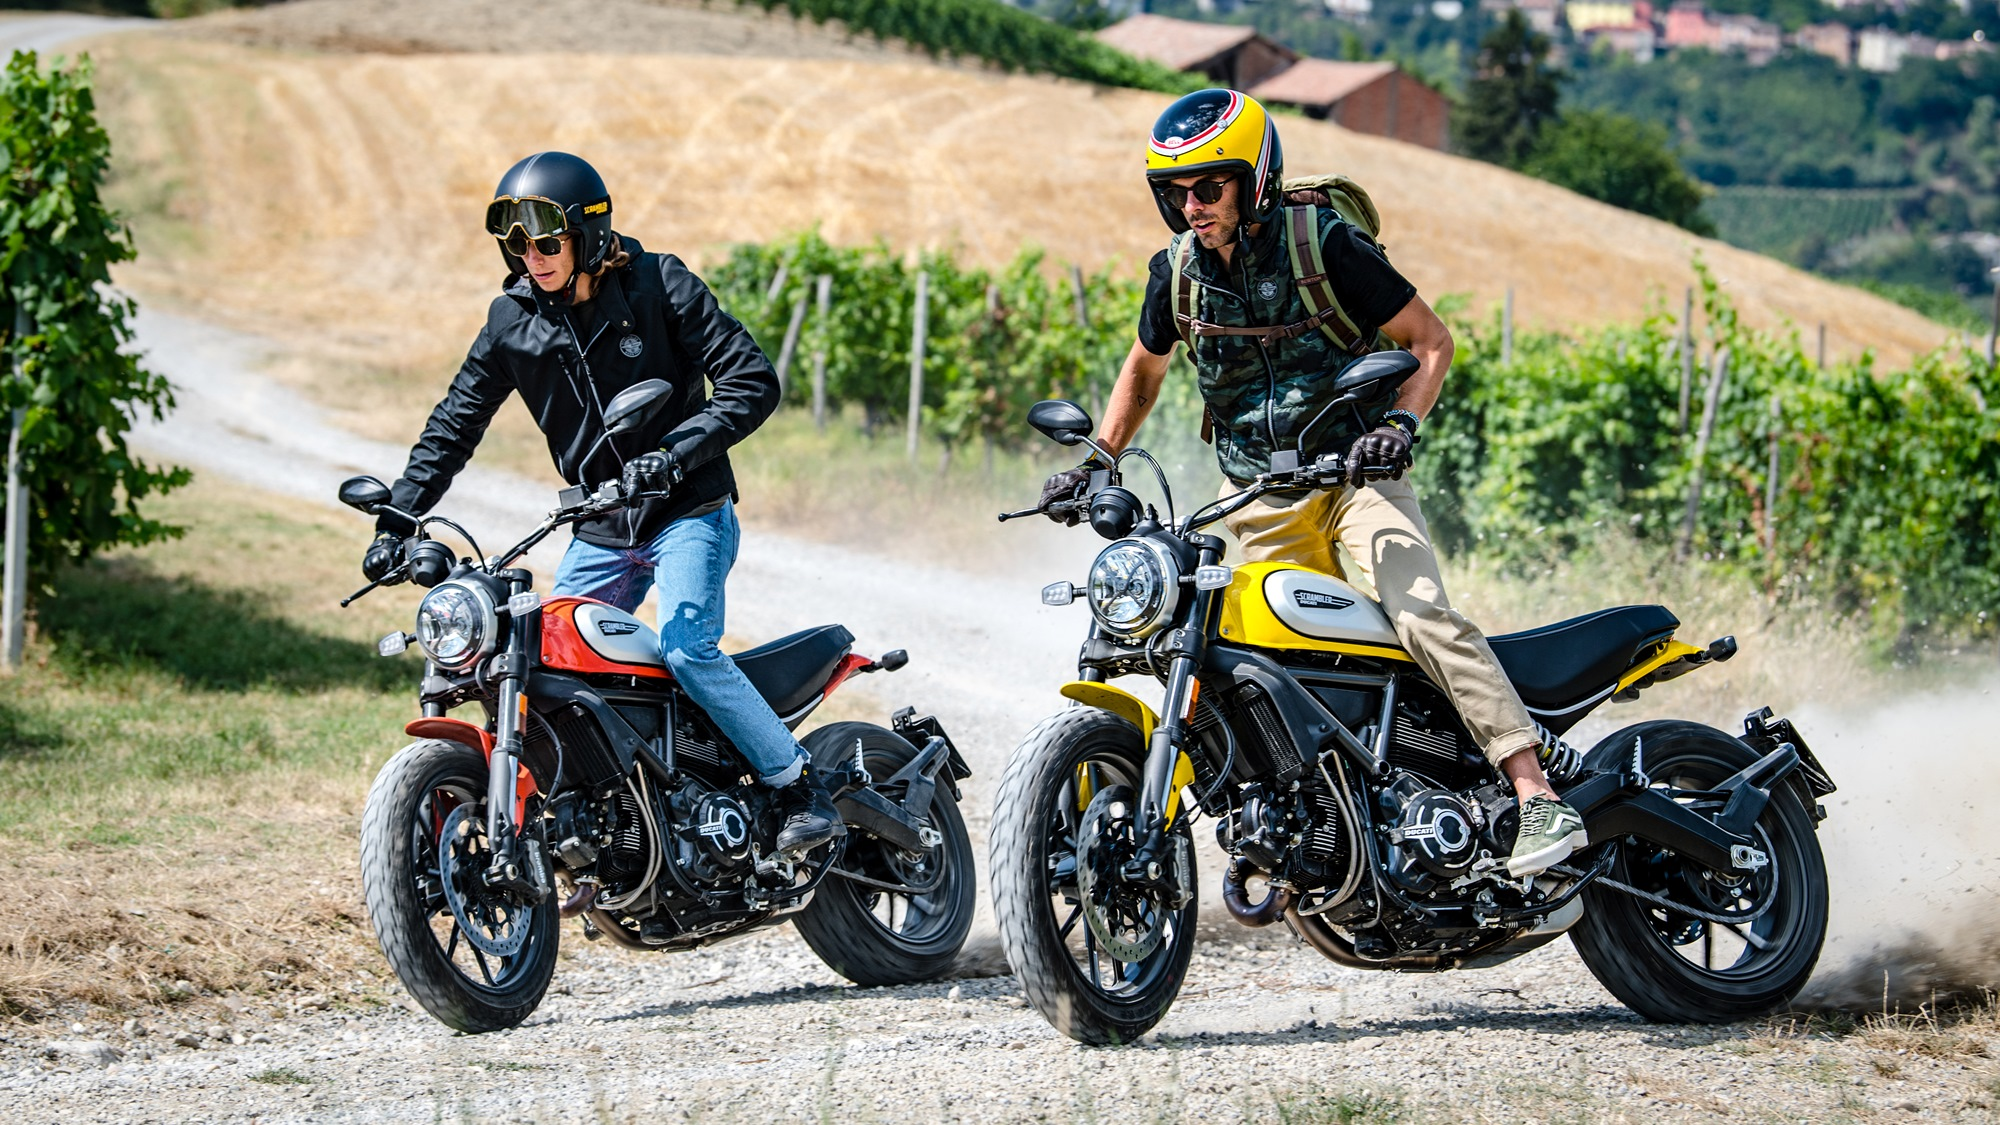 2019 Ducati Scrambler Icon and Ambience